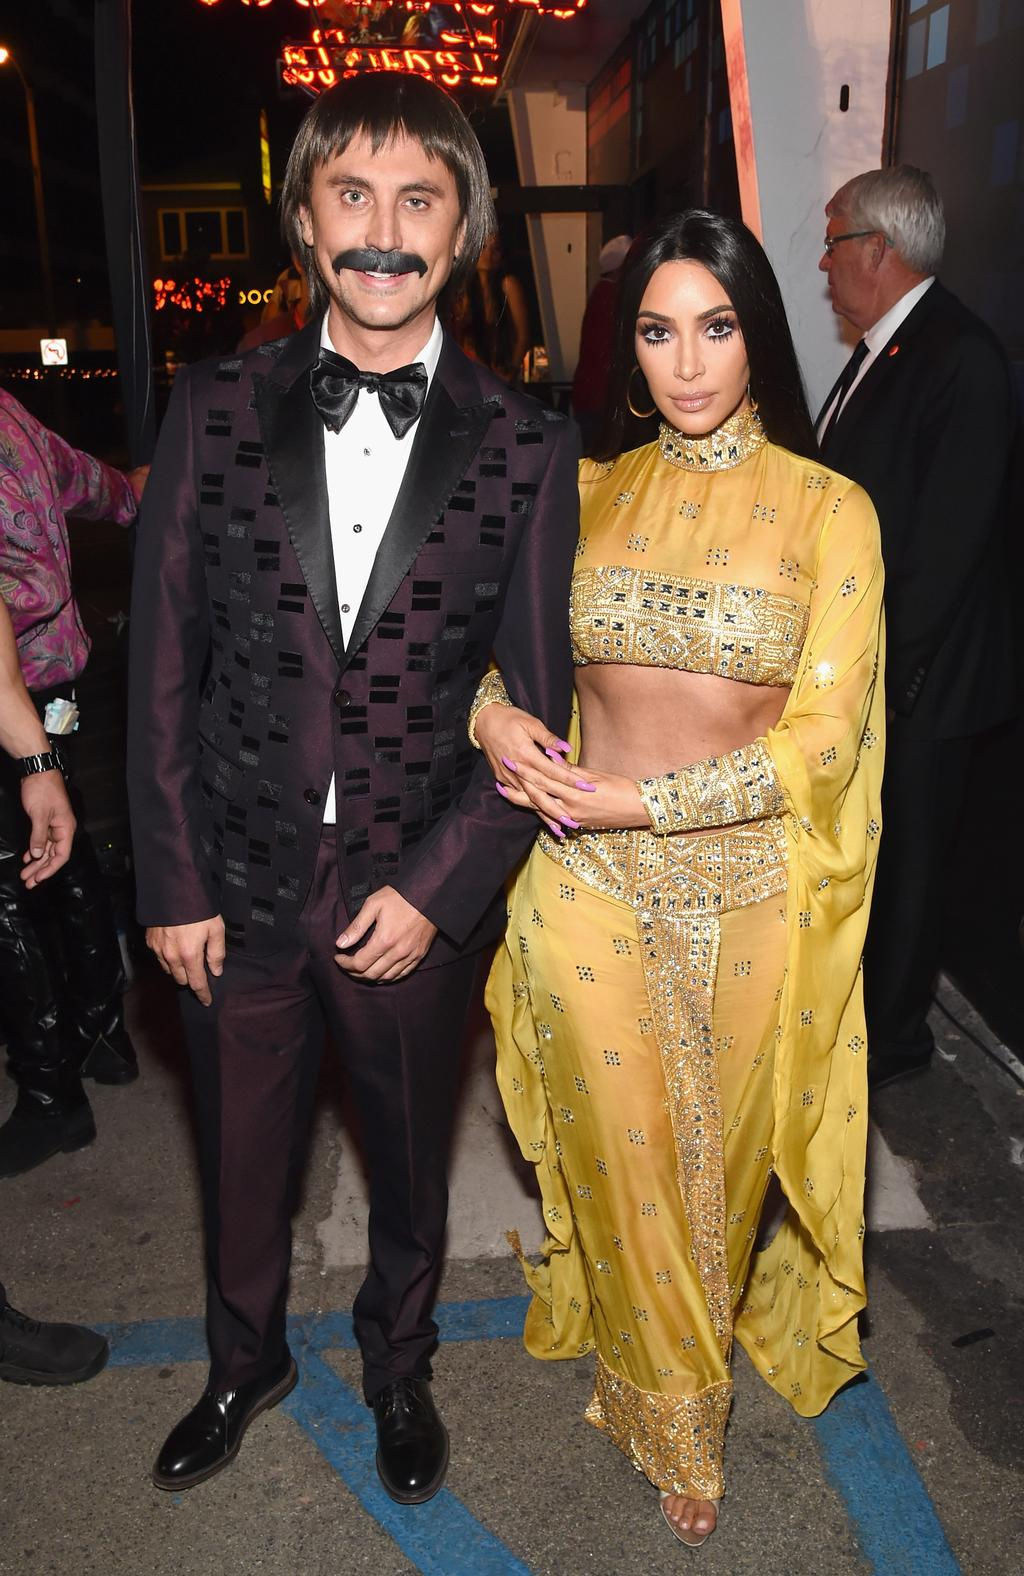 Jonathan Cheban (L) and Kim Kardashian attend Casamigos Halloween Party as Sonny and Cher. Picture: Michael Kovac/Getty Images for Casamigos Tequila